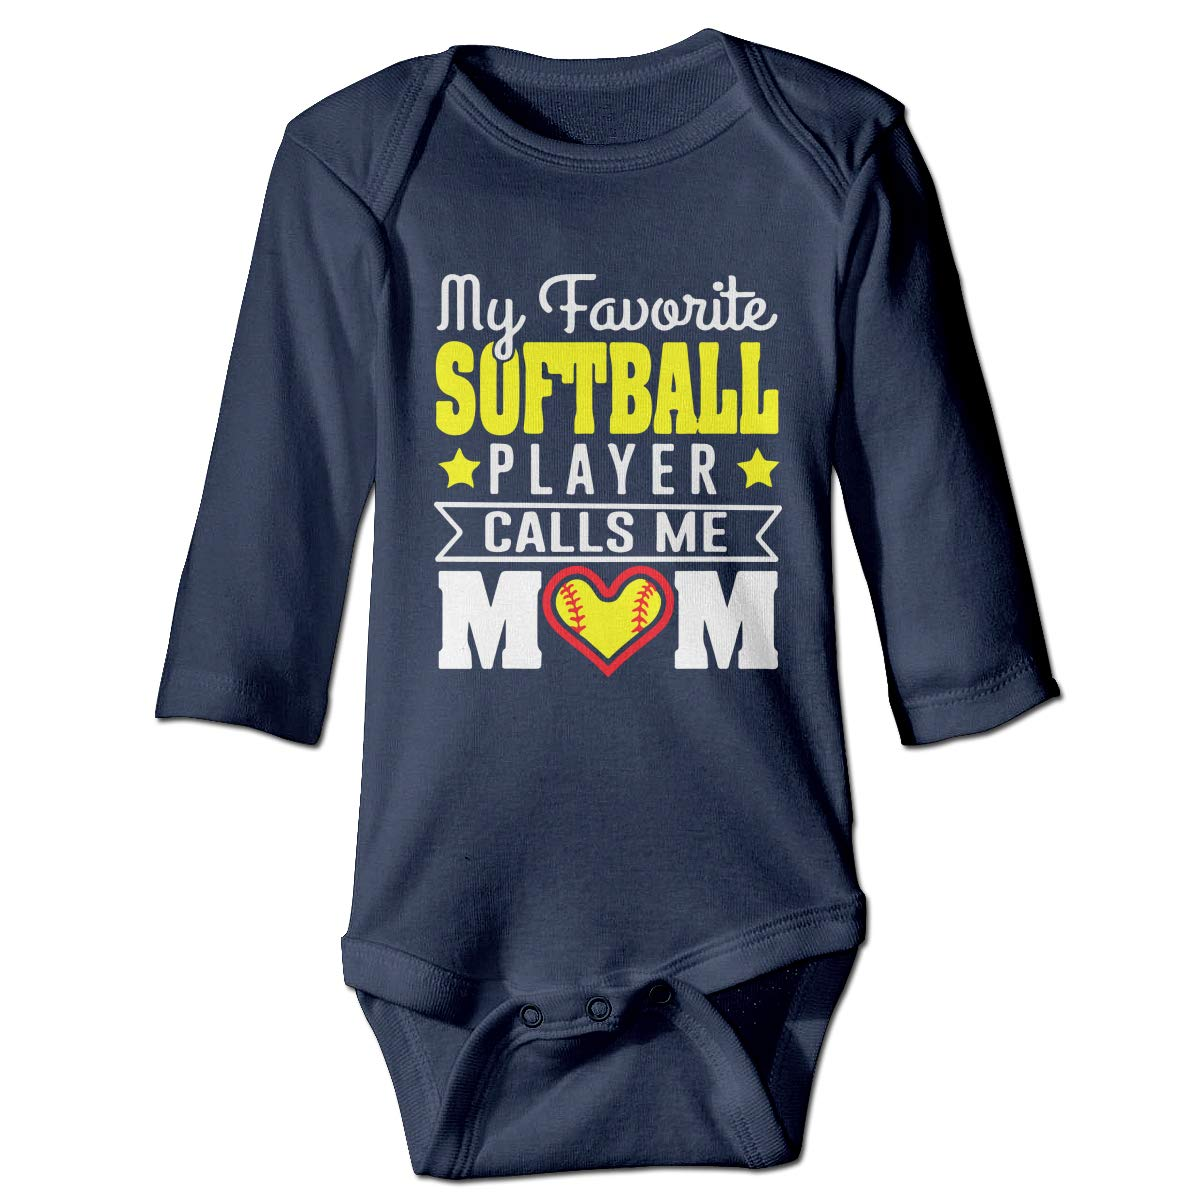 A14UBP Newborn Baby Boys Girls Long Sleeve Baby Clothes My Favorite Softball Player Unisex Button Playsuit Outfit Clothes